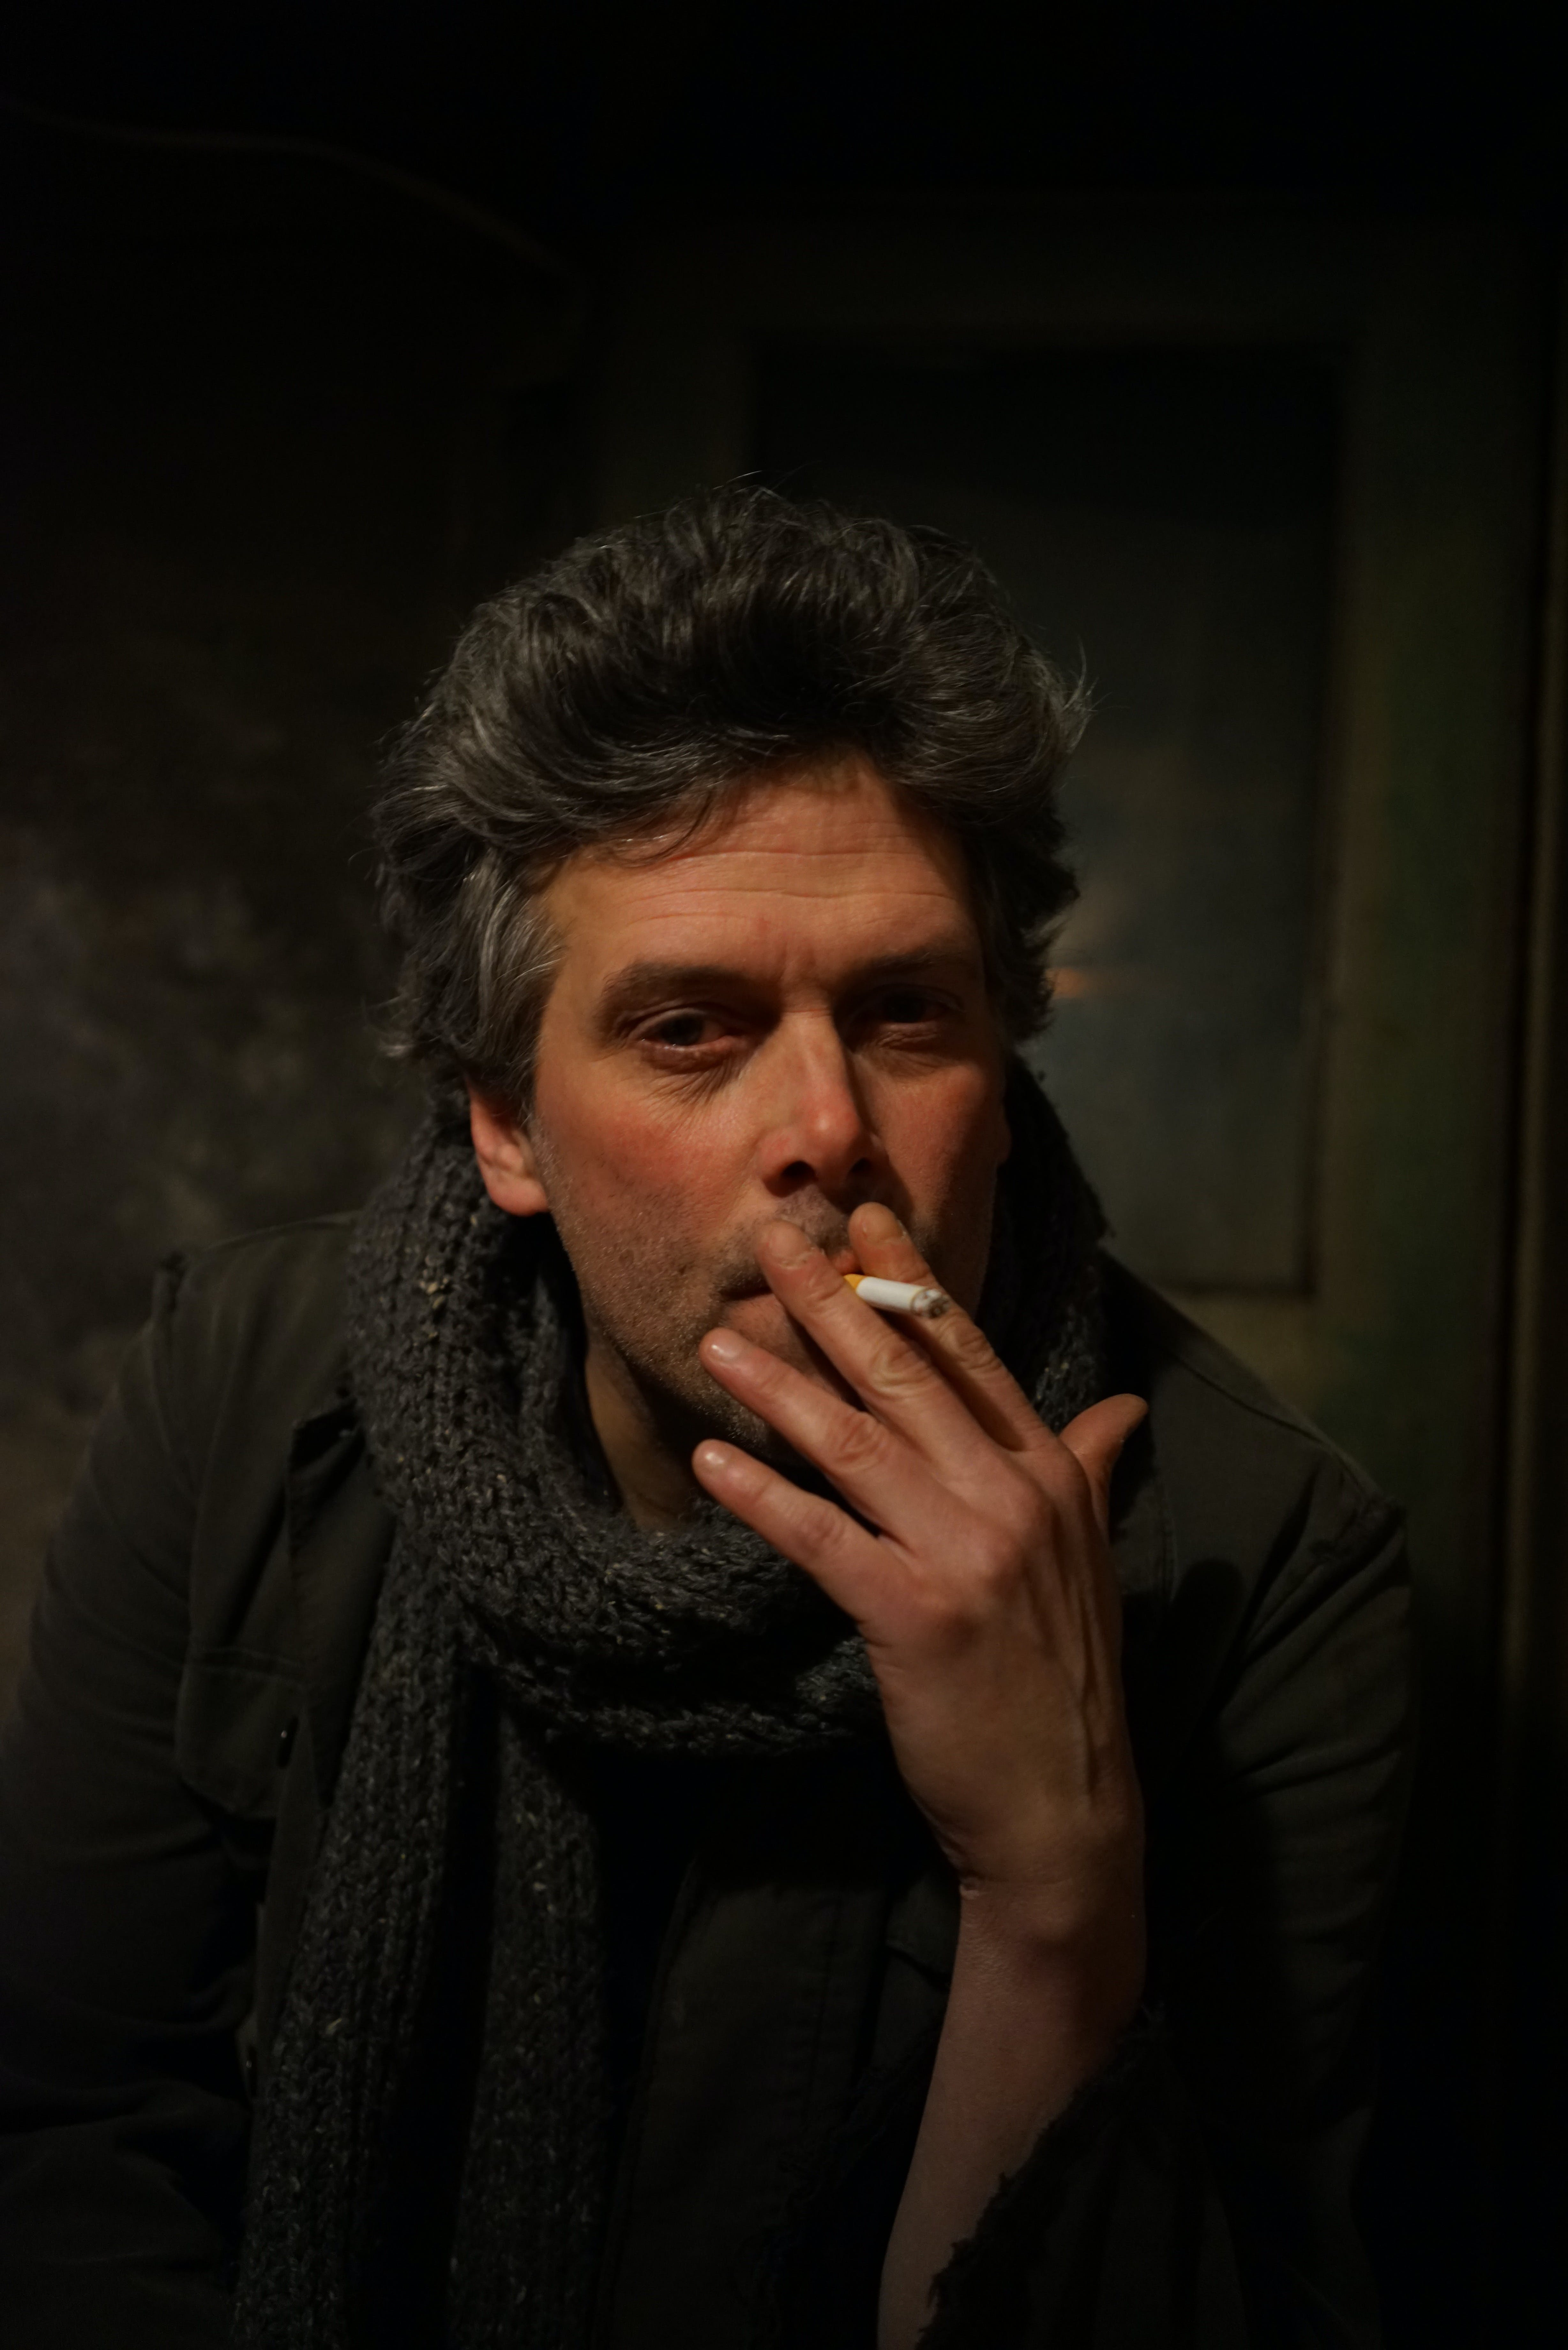 Man in Black Jacket With Gray Knit Scarf Smoking